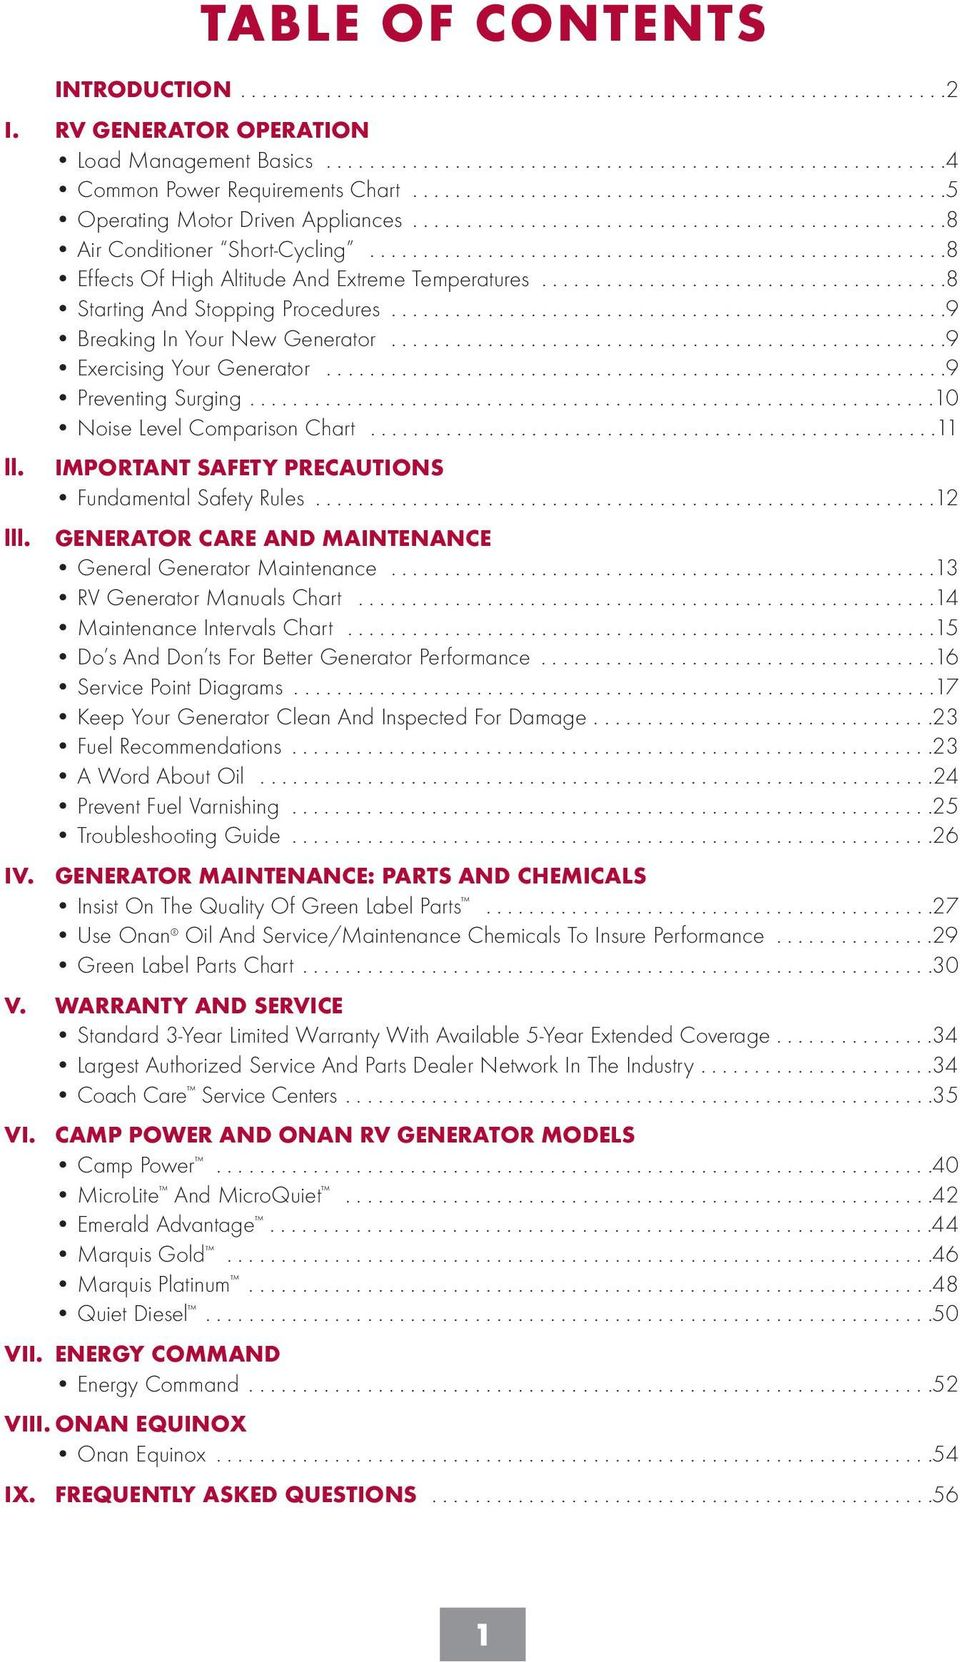 Bfa Onan Generator Wiring Diagram on 4.0 onan generator manuals, onan remote start wiring diagram, rv generator installation diagram, onan diesel generator parts diagram, onan generator carburetor diagram, kubota generator wiring diagram, onan coil wiring diagram, onan engine parts diagram, onan marquis 7000 parts diagram, onan generator engine diagram, onan transfer switch wiring diagram, onan engine wiring diagram, onan starter solenoid wiring diagram, onan 5500 carburetor diagram, 4.0 onan generator parts, cummins generator wiring diagram, onan rv generator parts diagram,